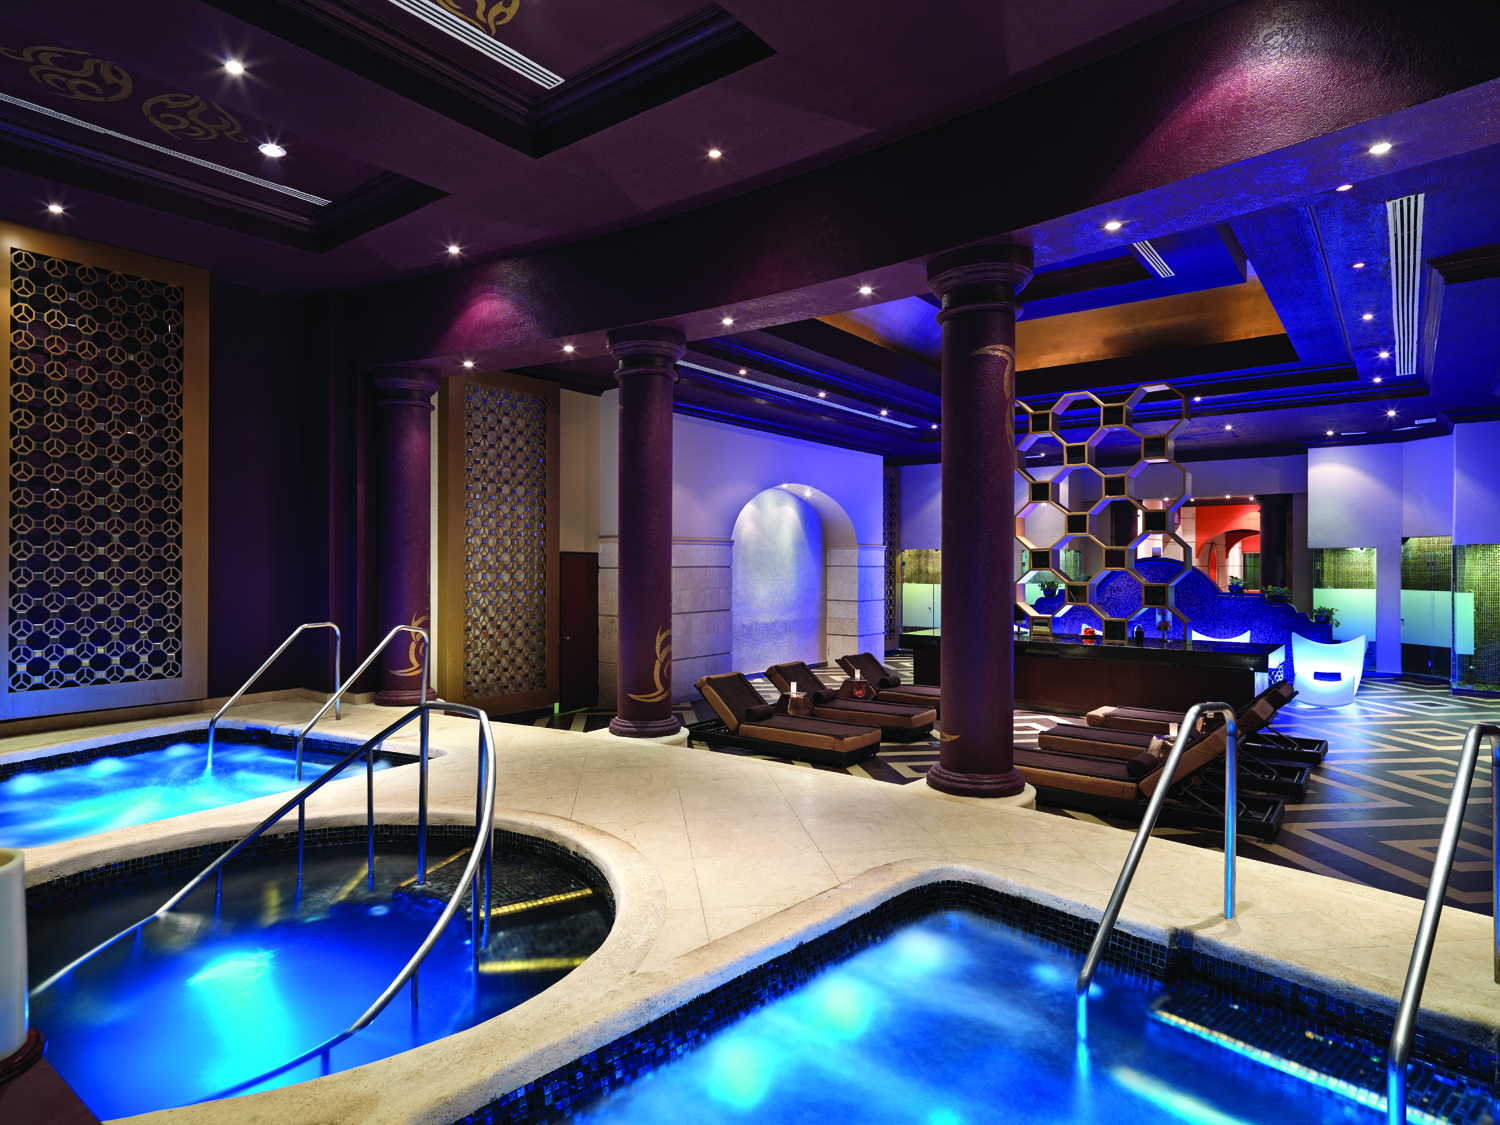 Hard Rock Hotel Riviera Maya spa.